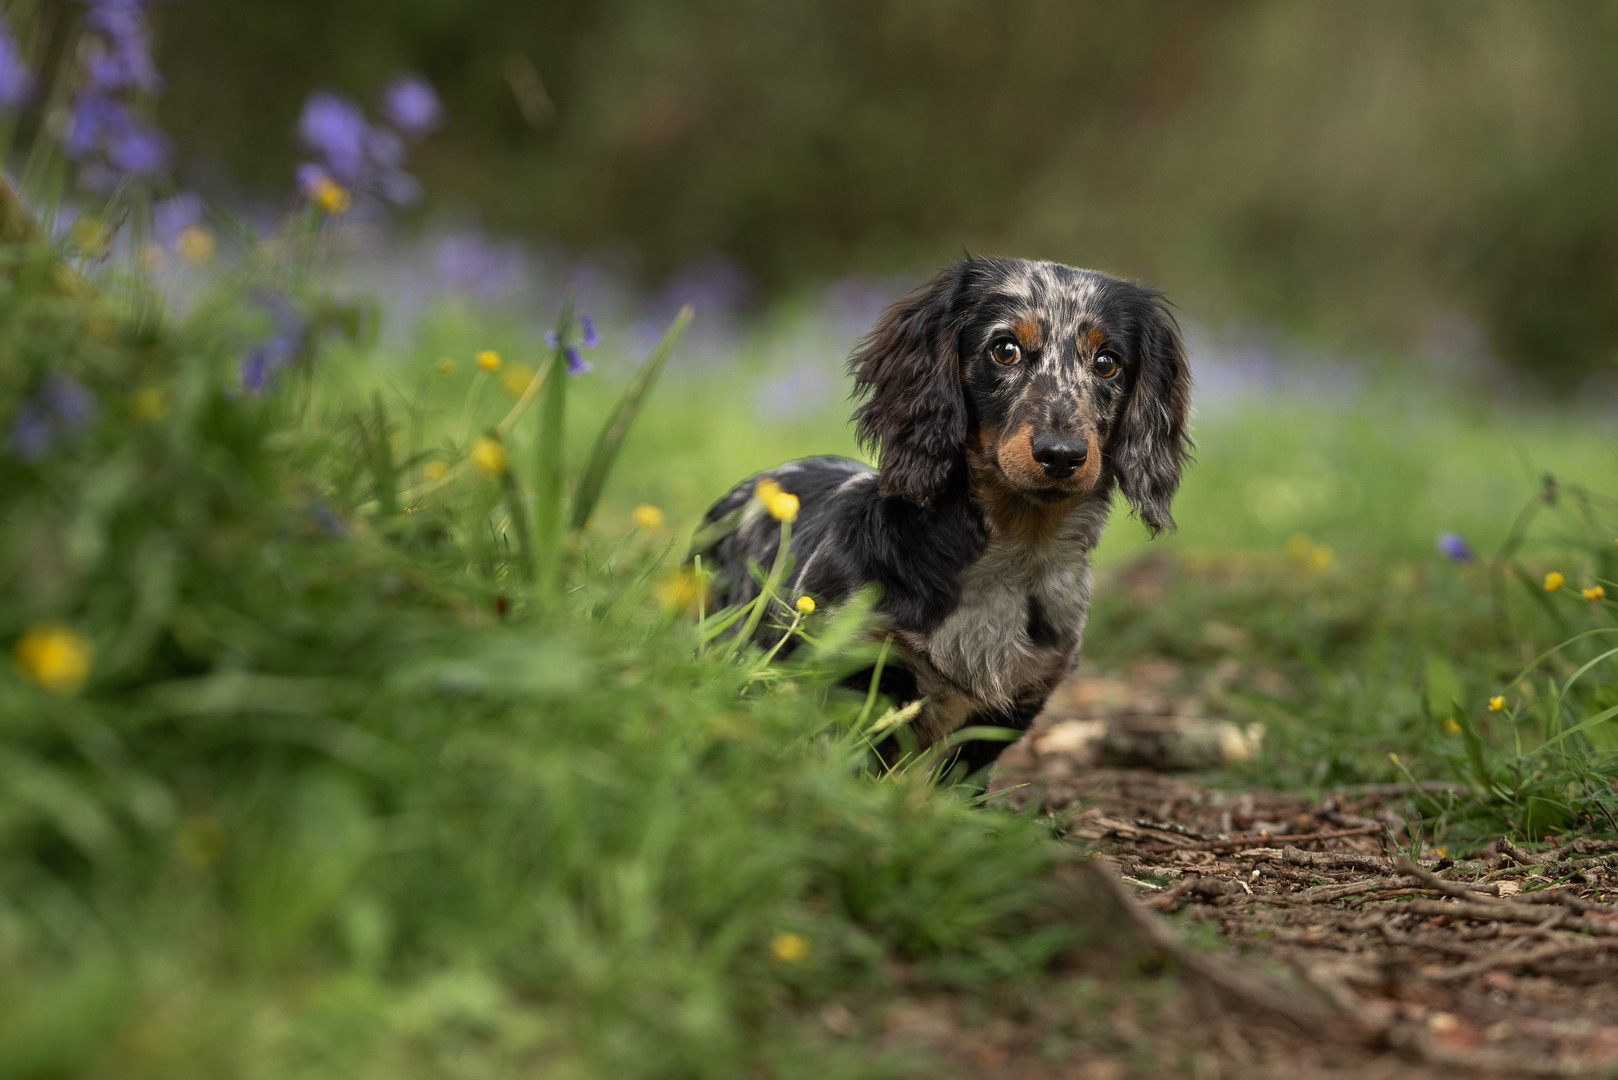 Dachshund in woodland.jpg